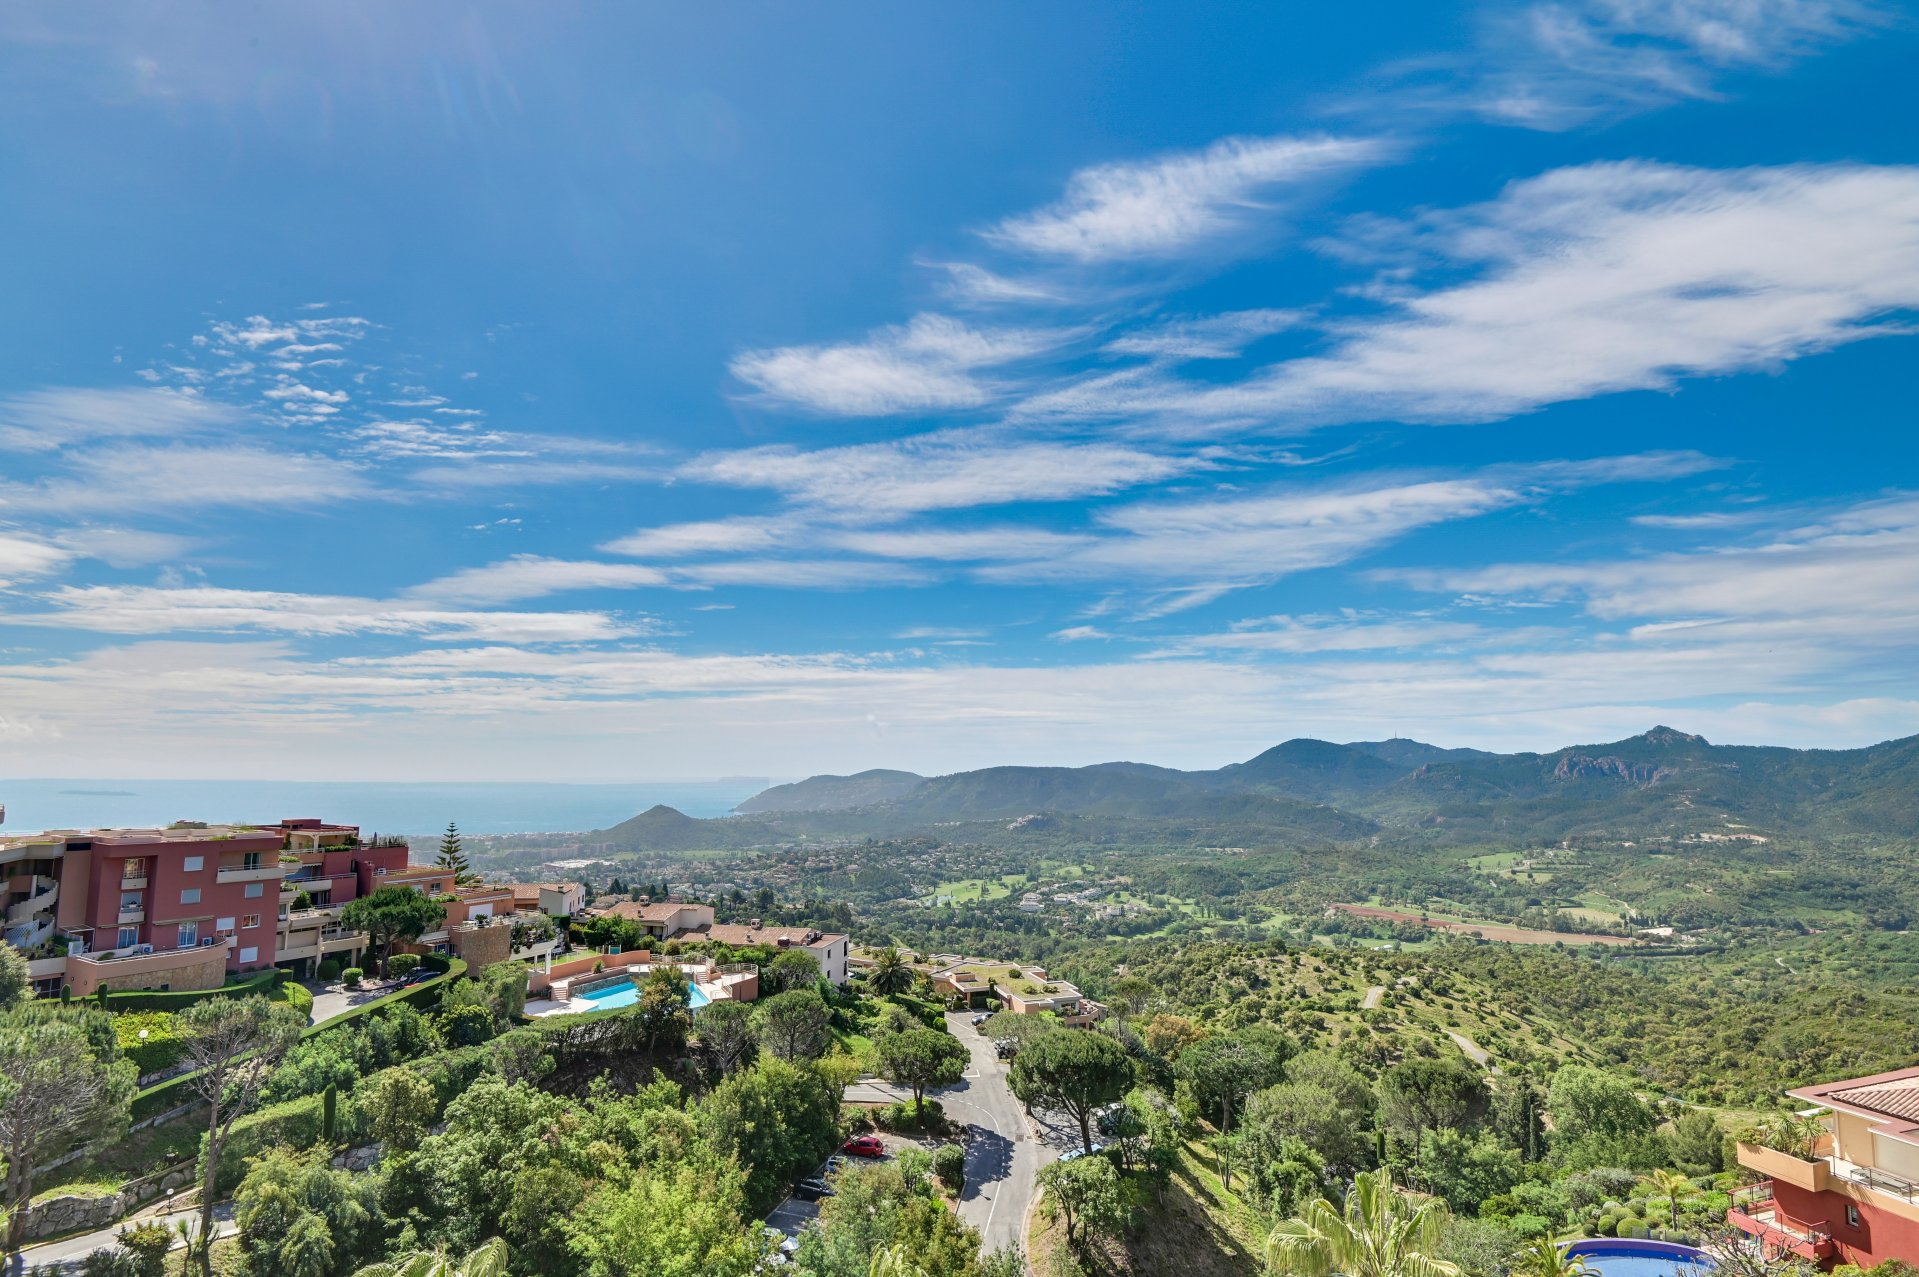 UNDER OFFER - Mandelieu close to Cannes - Sole agent - Stunning views for this 200 m2 penthouse with 115 m2 terraces. Pool, 2 garages, HC norms.